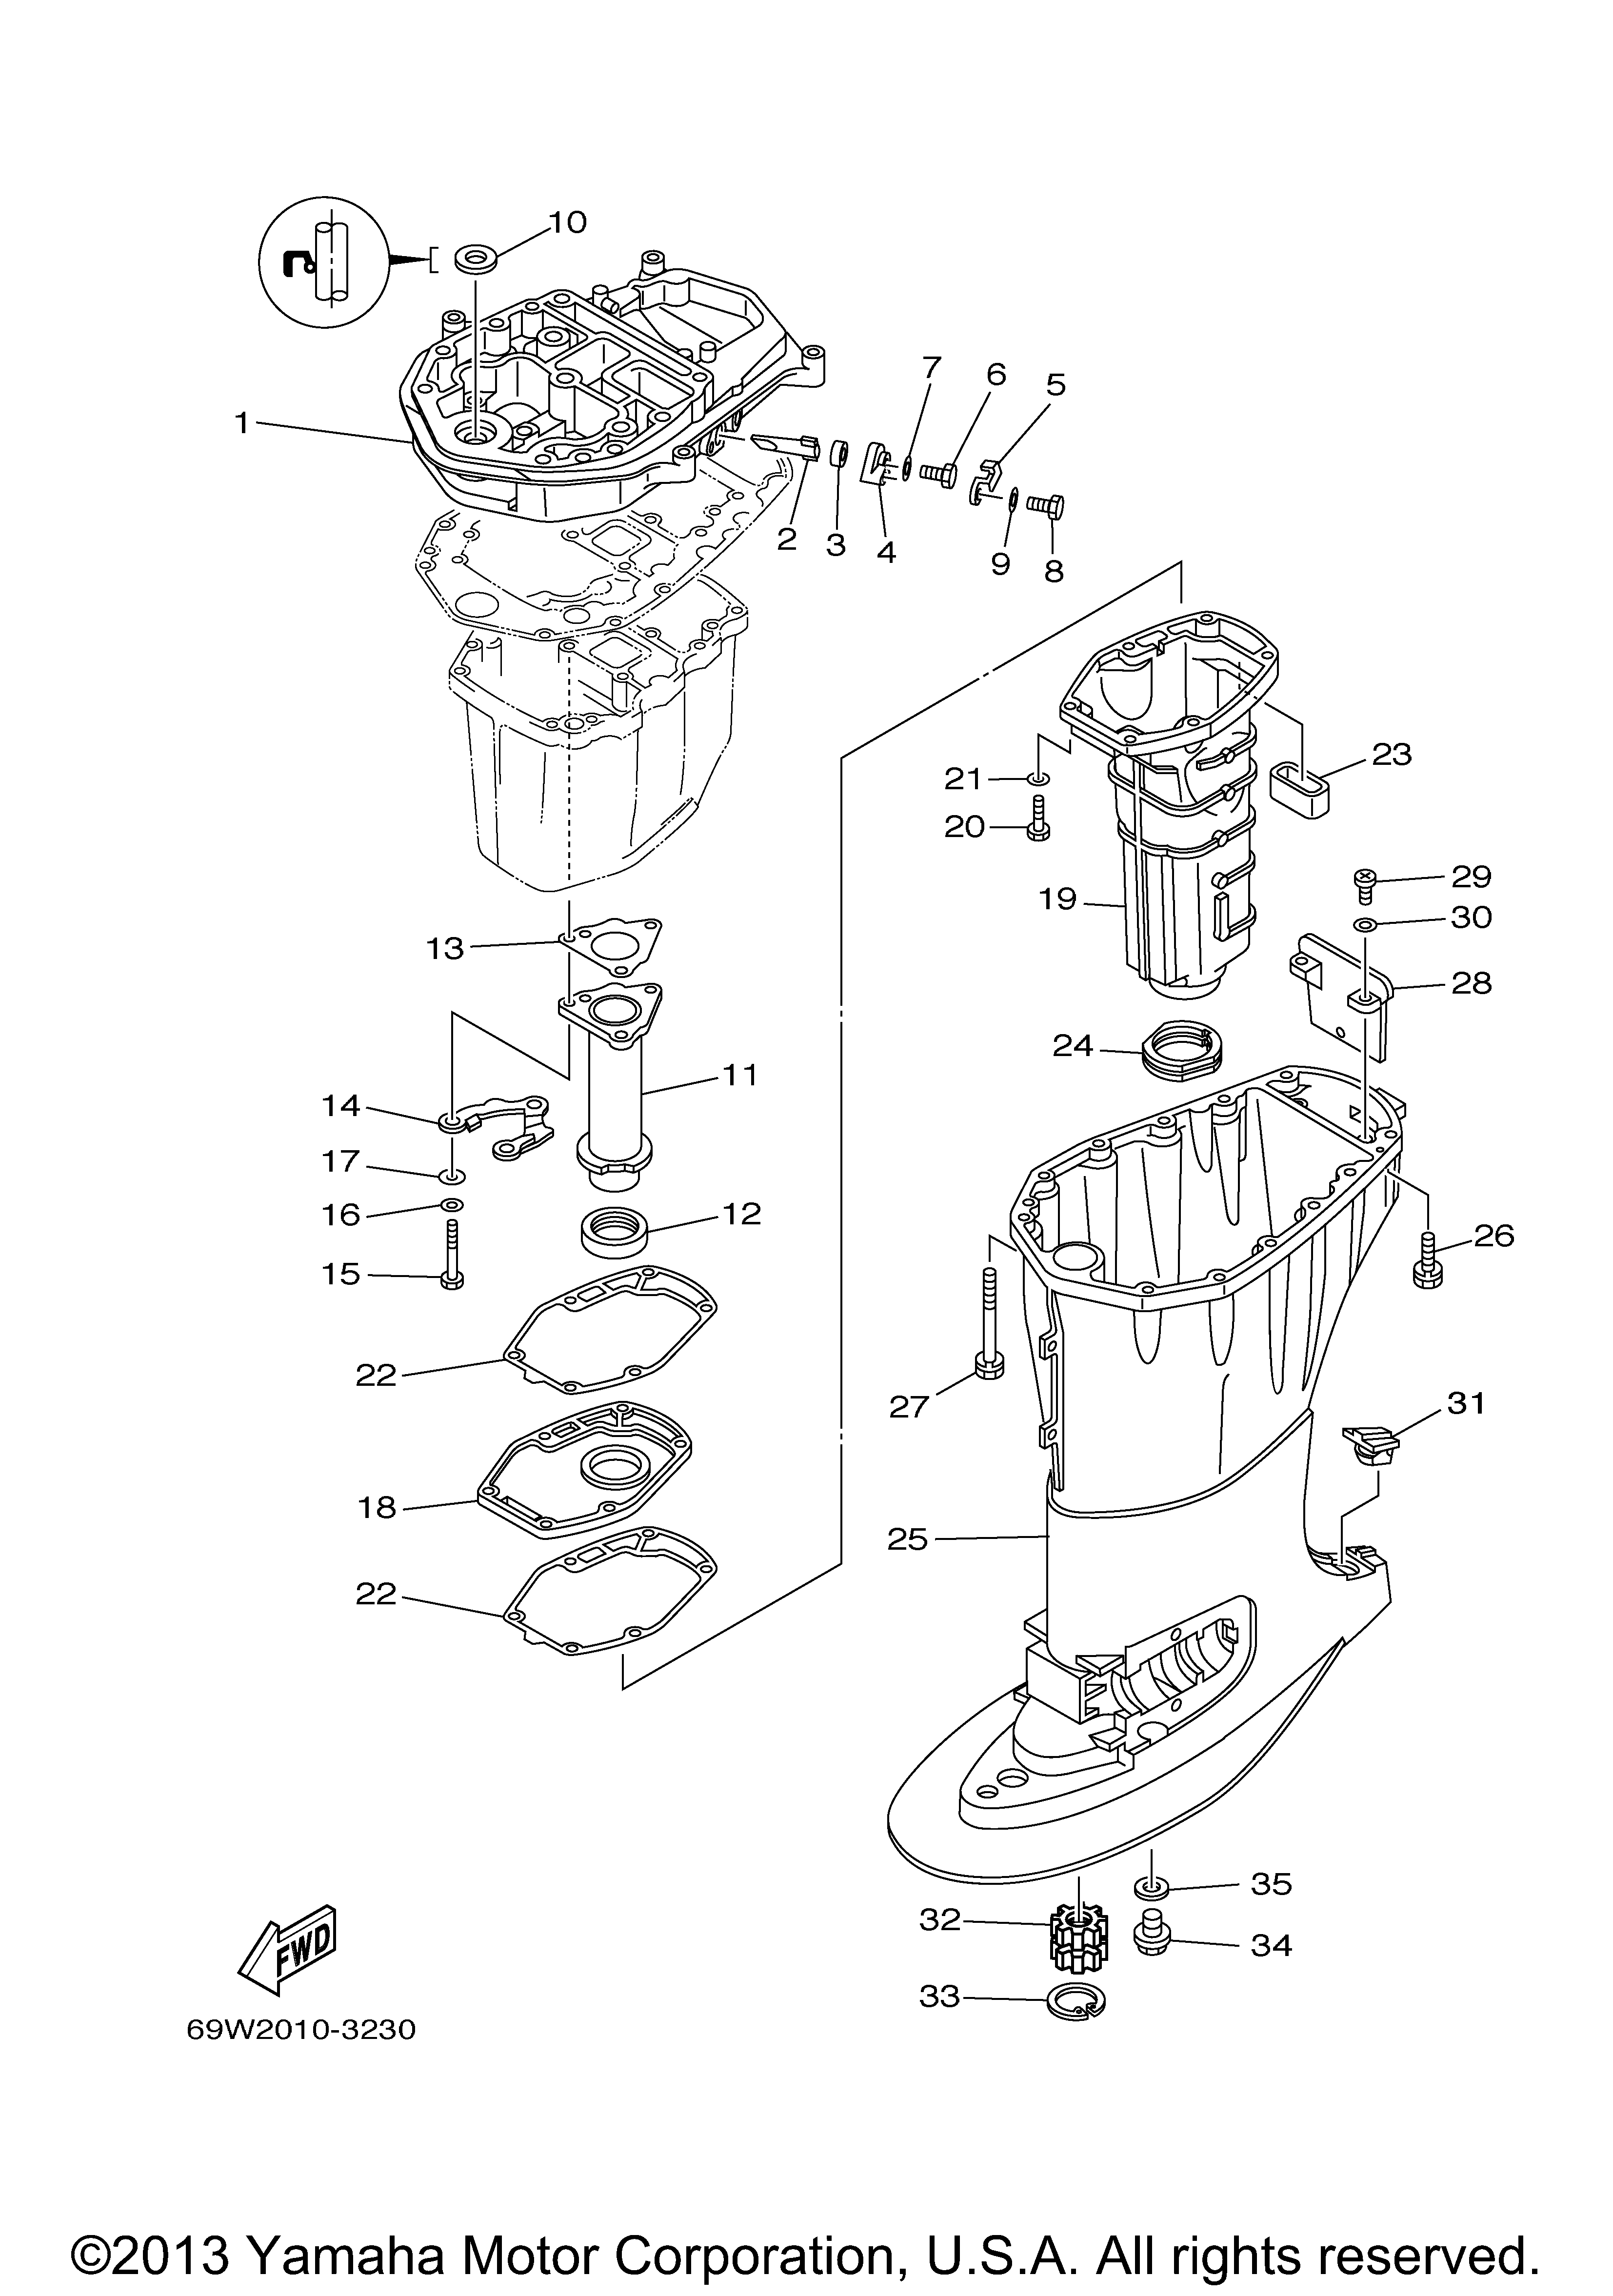 Yamaha Outboard Motor Parts Usa